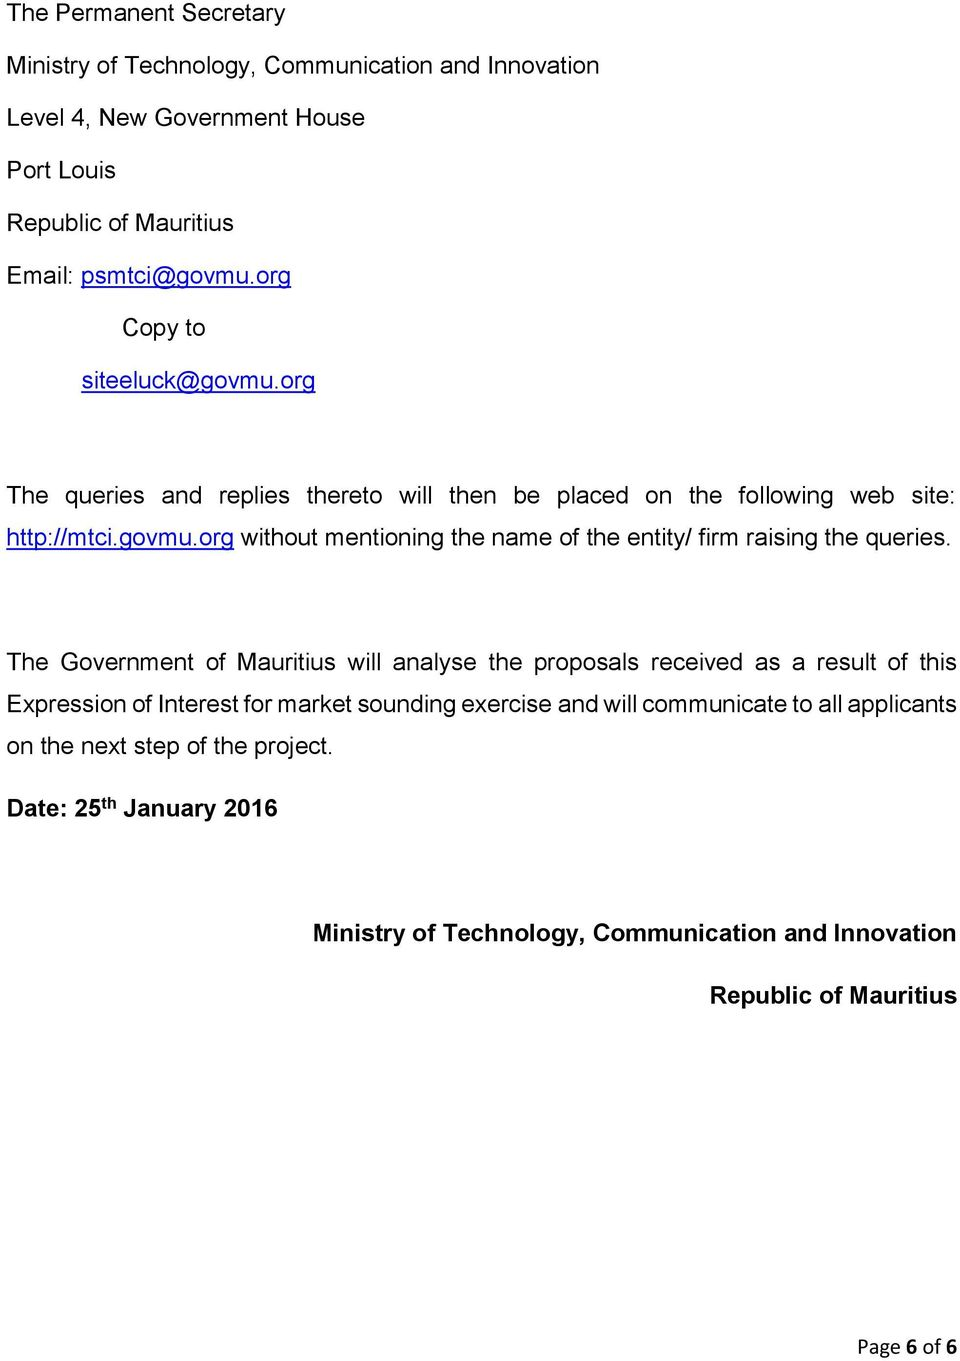 The Government of Mauritius will analyse the proposals received as a result of this Expression of Interest for market sounding exercise and will communicate to all